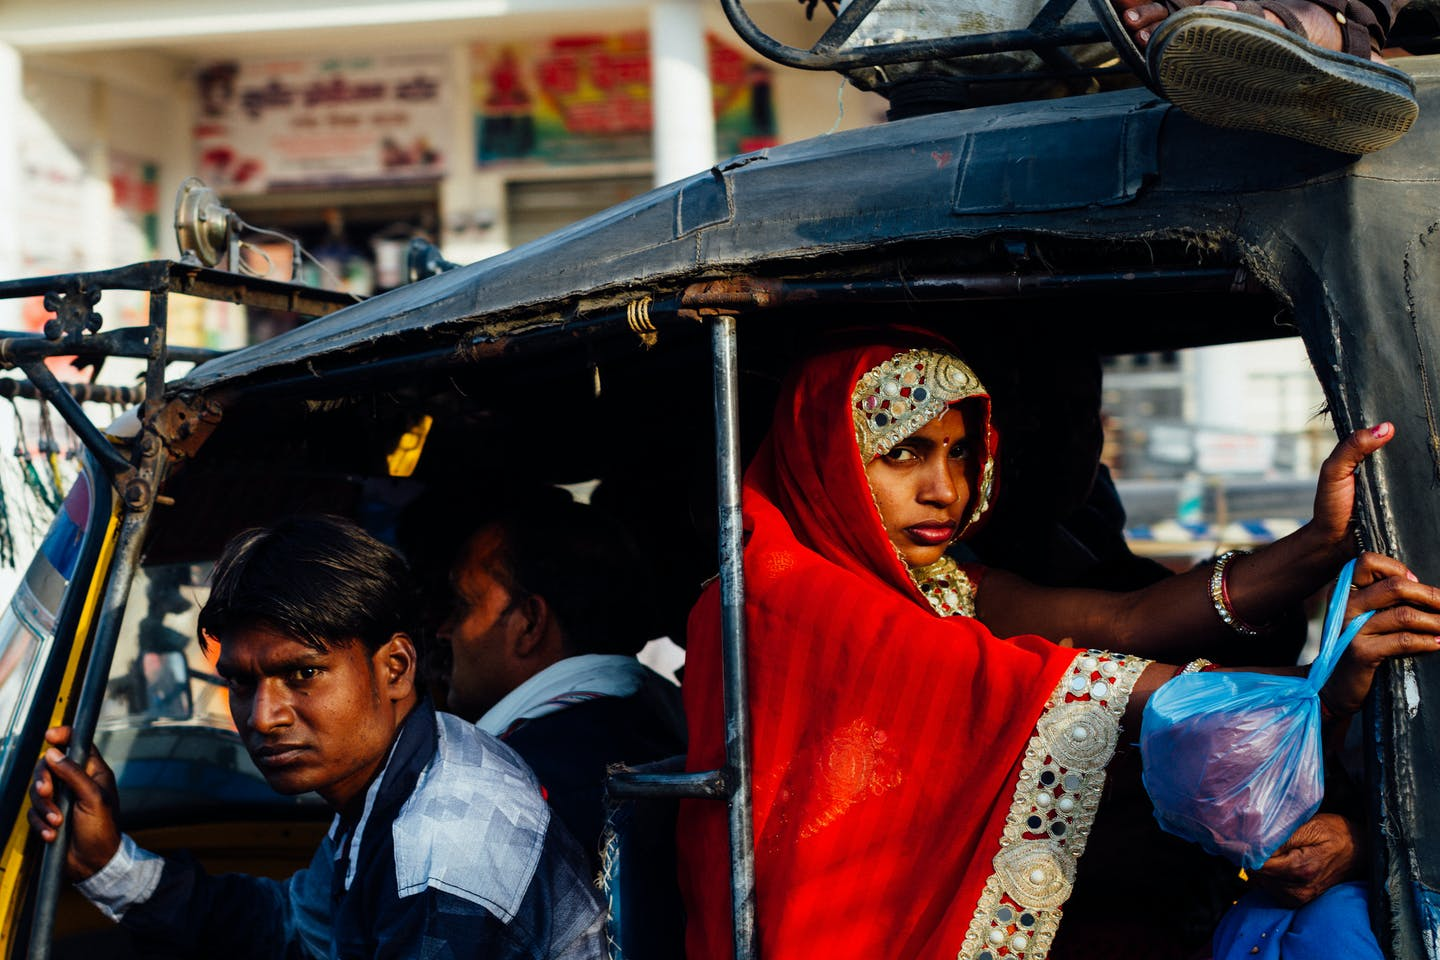 A woman rides in the back of an auto-rickshaw in Uttar Pradesh, India.